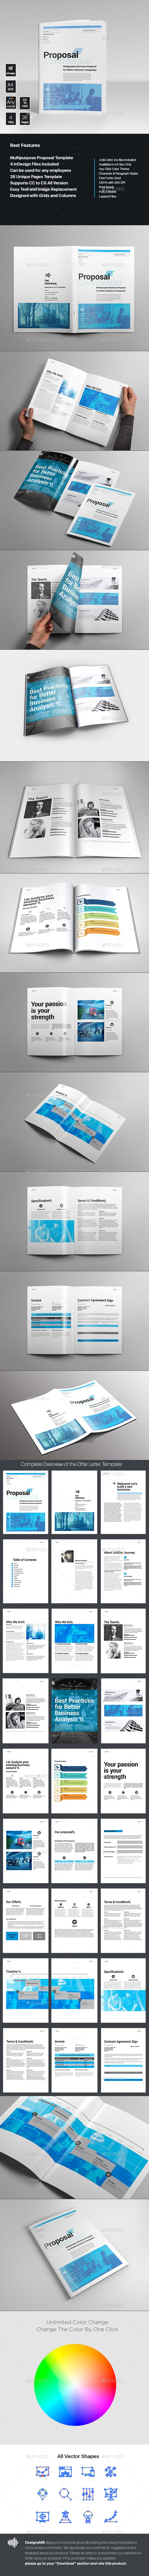 Business plan proposal templates proposals and template business plan by designsmill business plan template this business proposal template comes with size 26 pages indesign layout compatible with cc to versi cheaphphosting Images